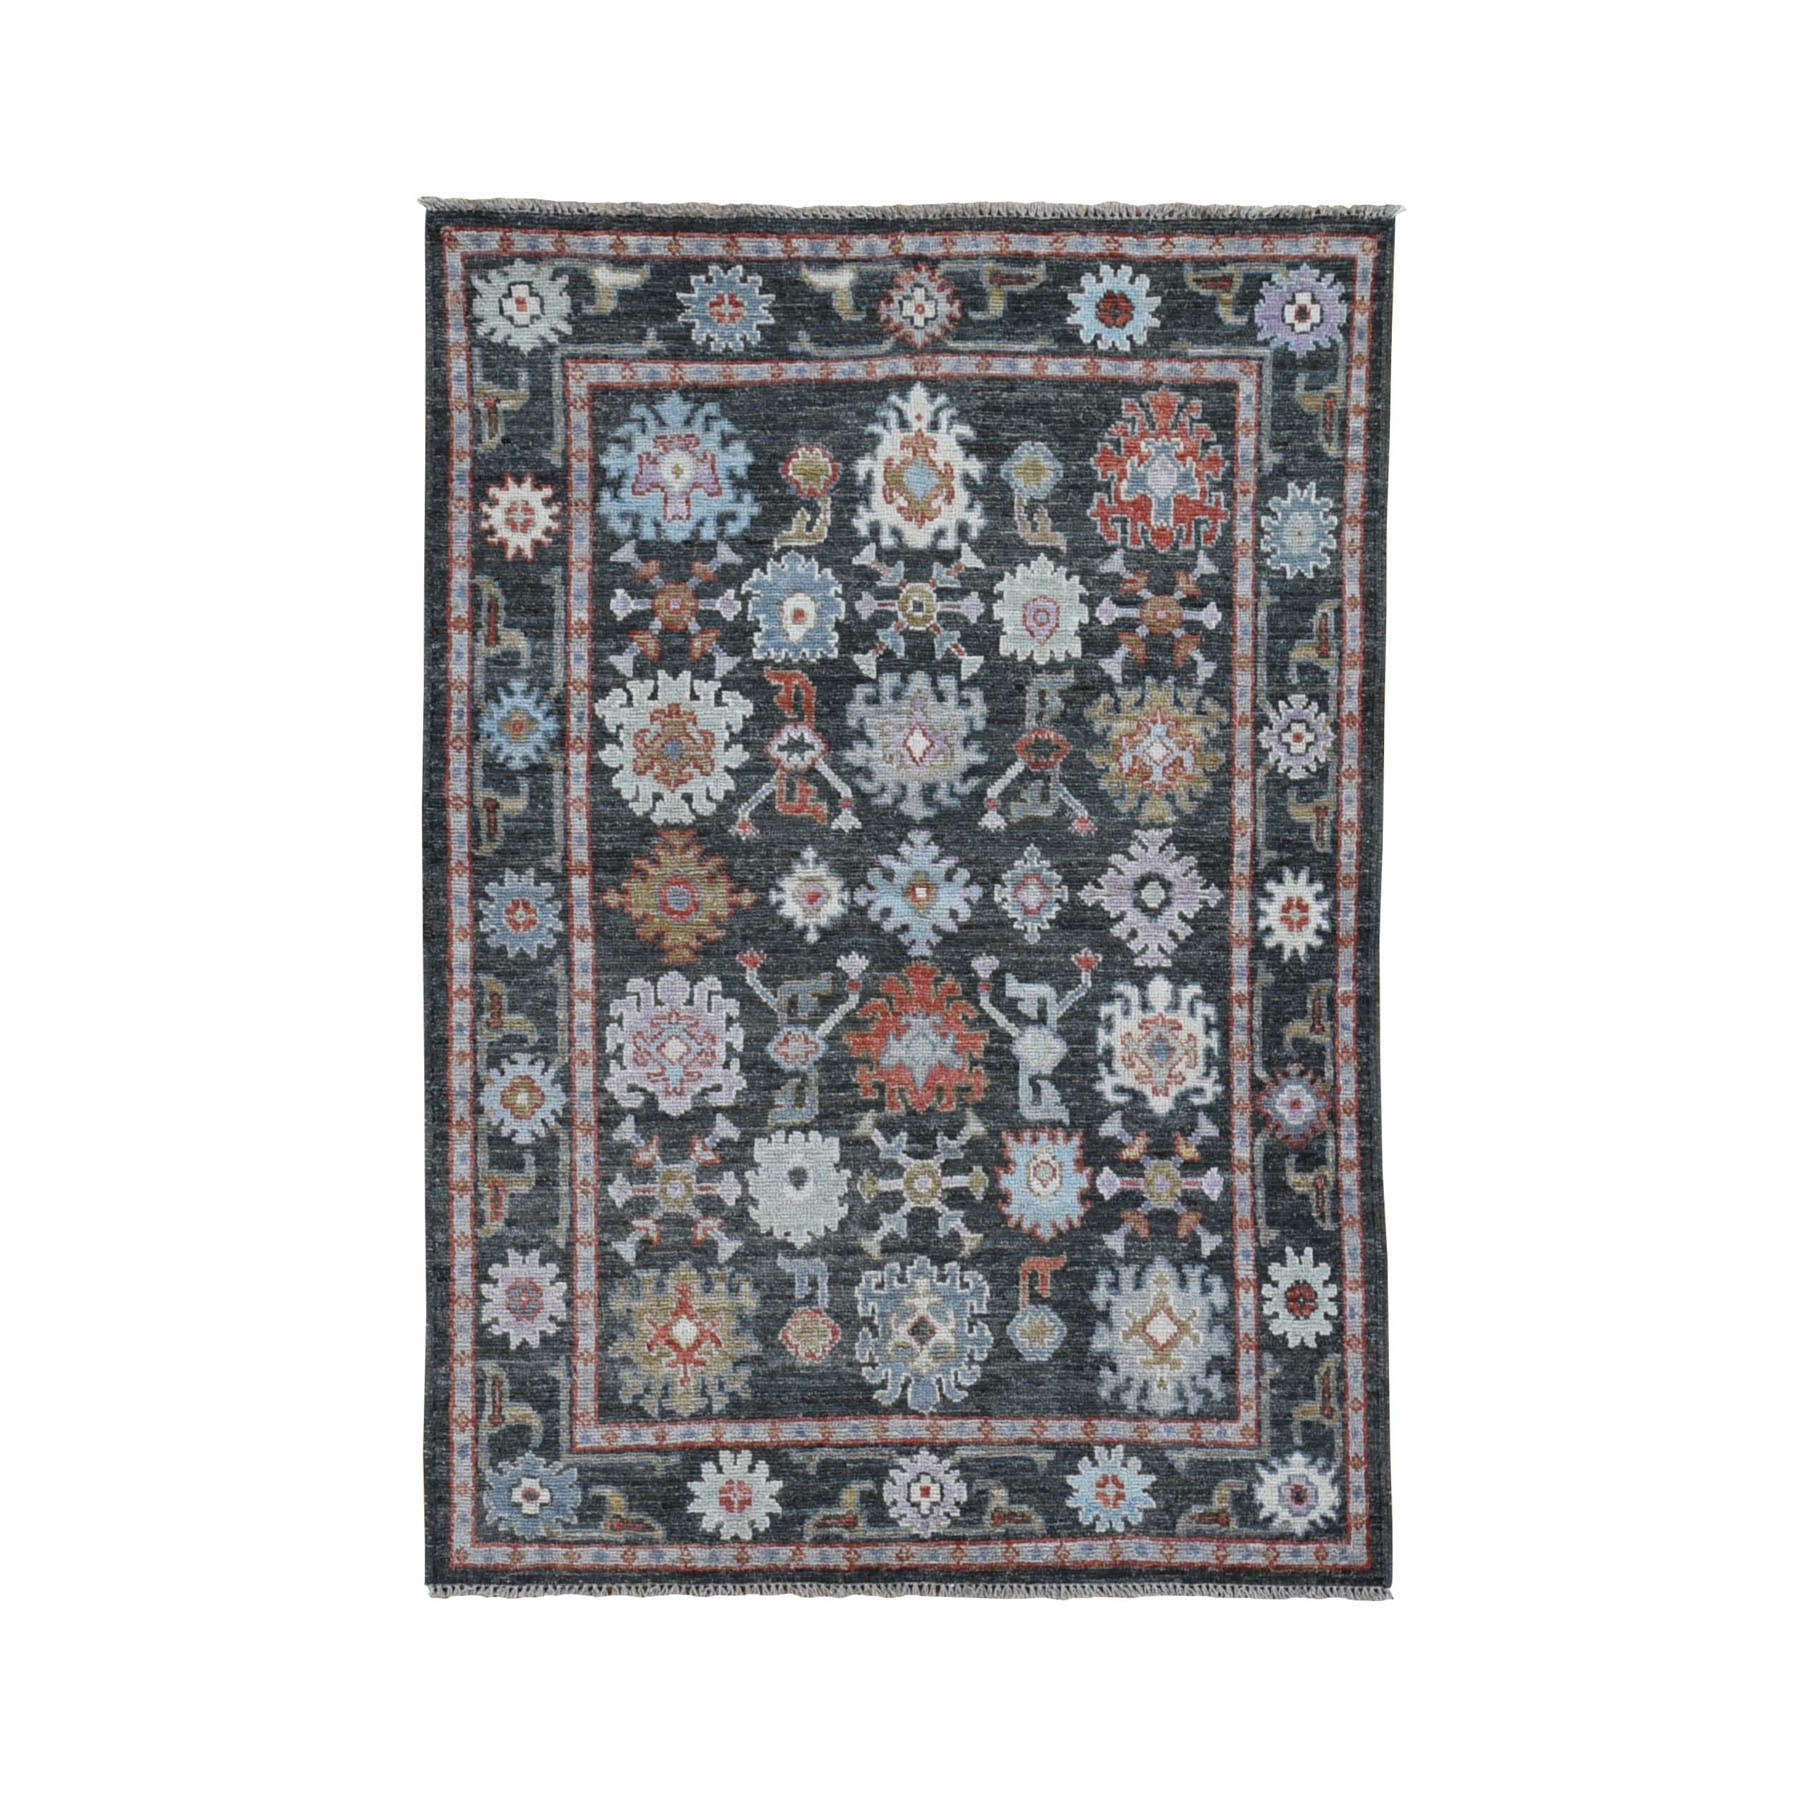 "4'X5'7"" Charcoal Black Angora Oushak With Soft Velvety Wool Hand Knotted Oriental Rug moad9a99"